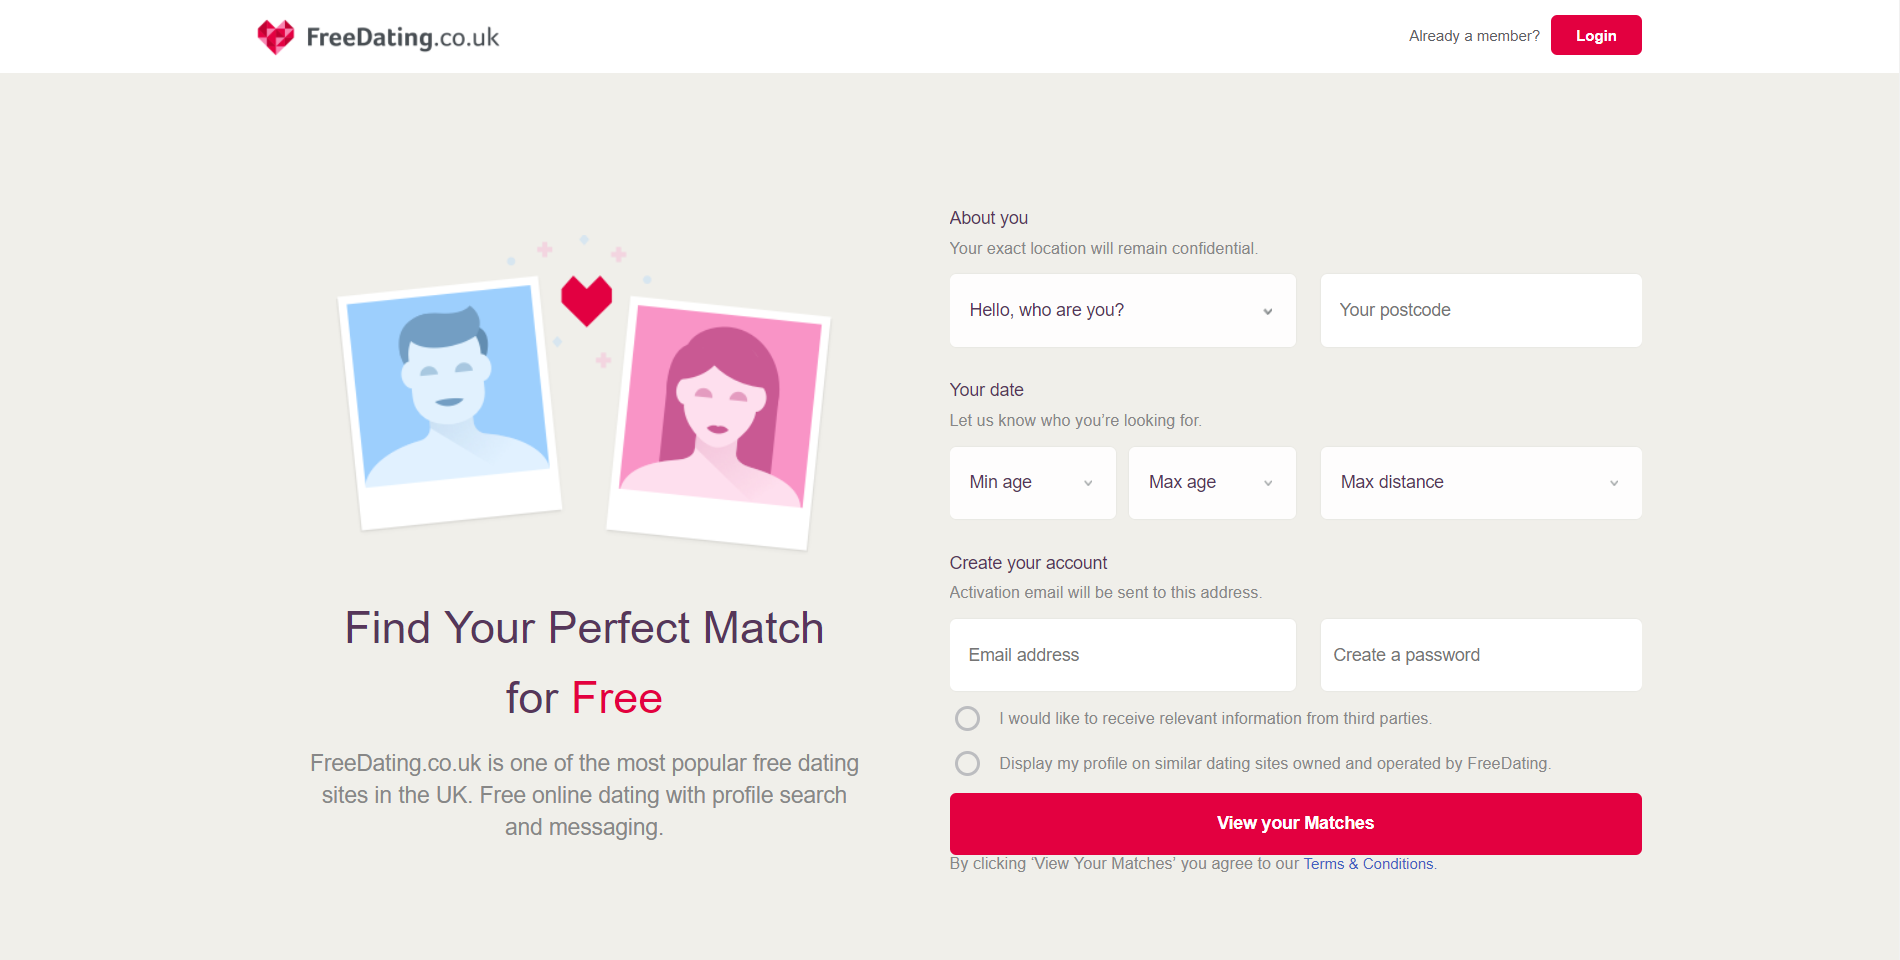 quite tempting best free online dating websites 2014 apologise, but, opinion